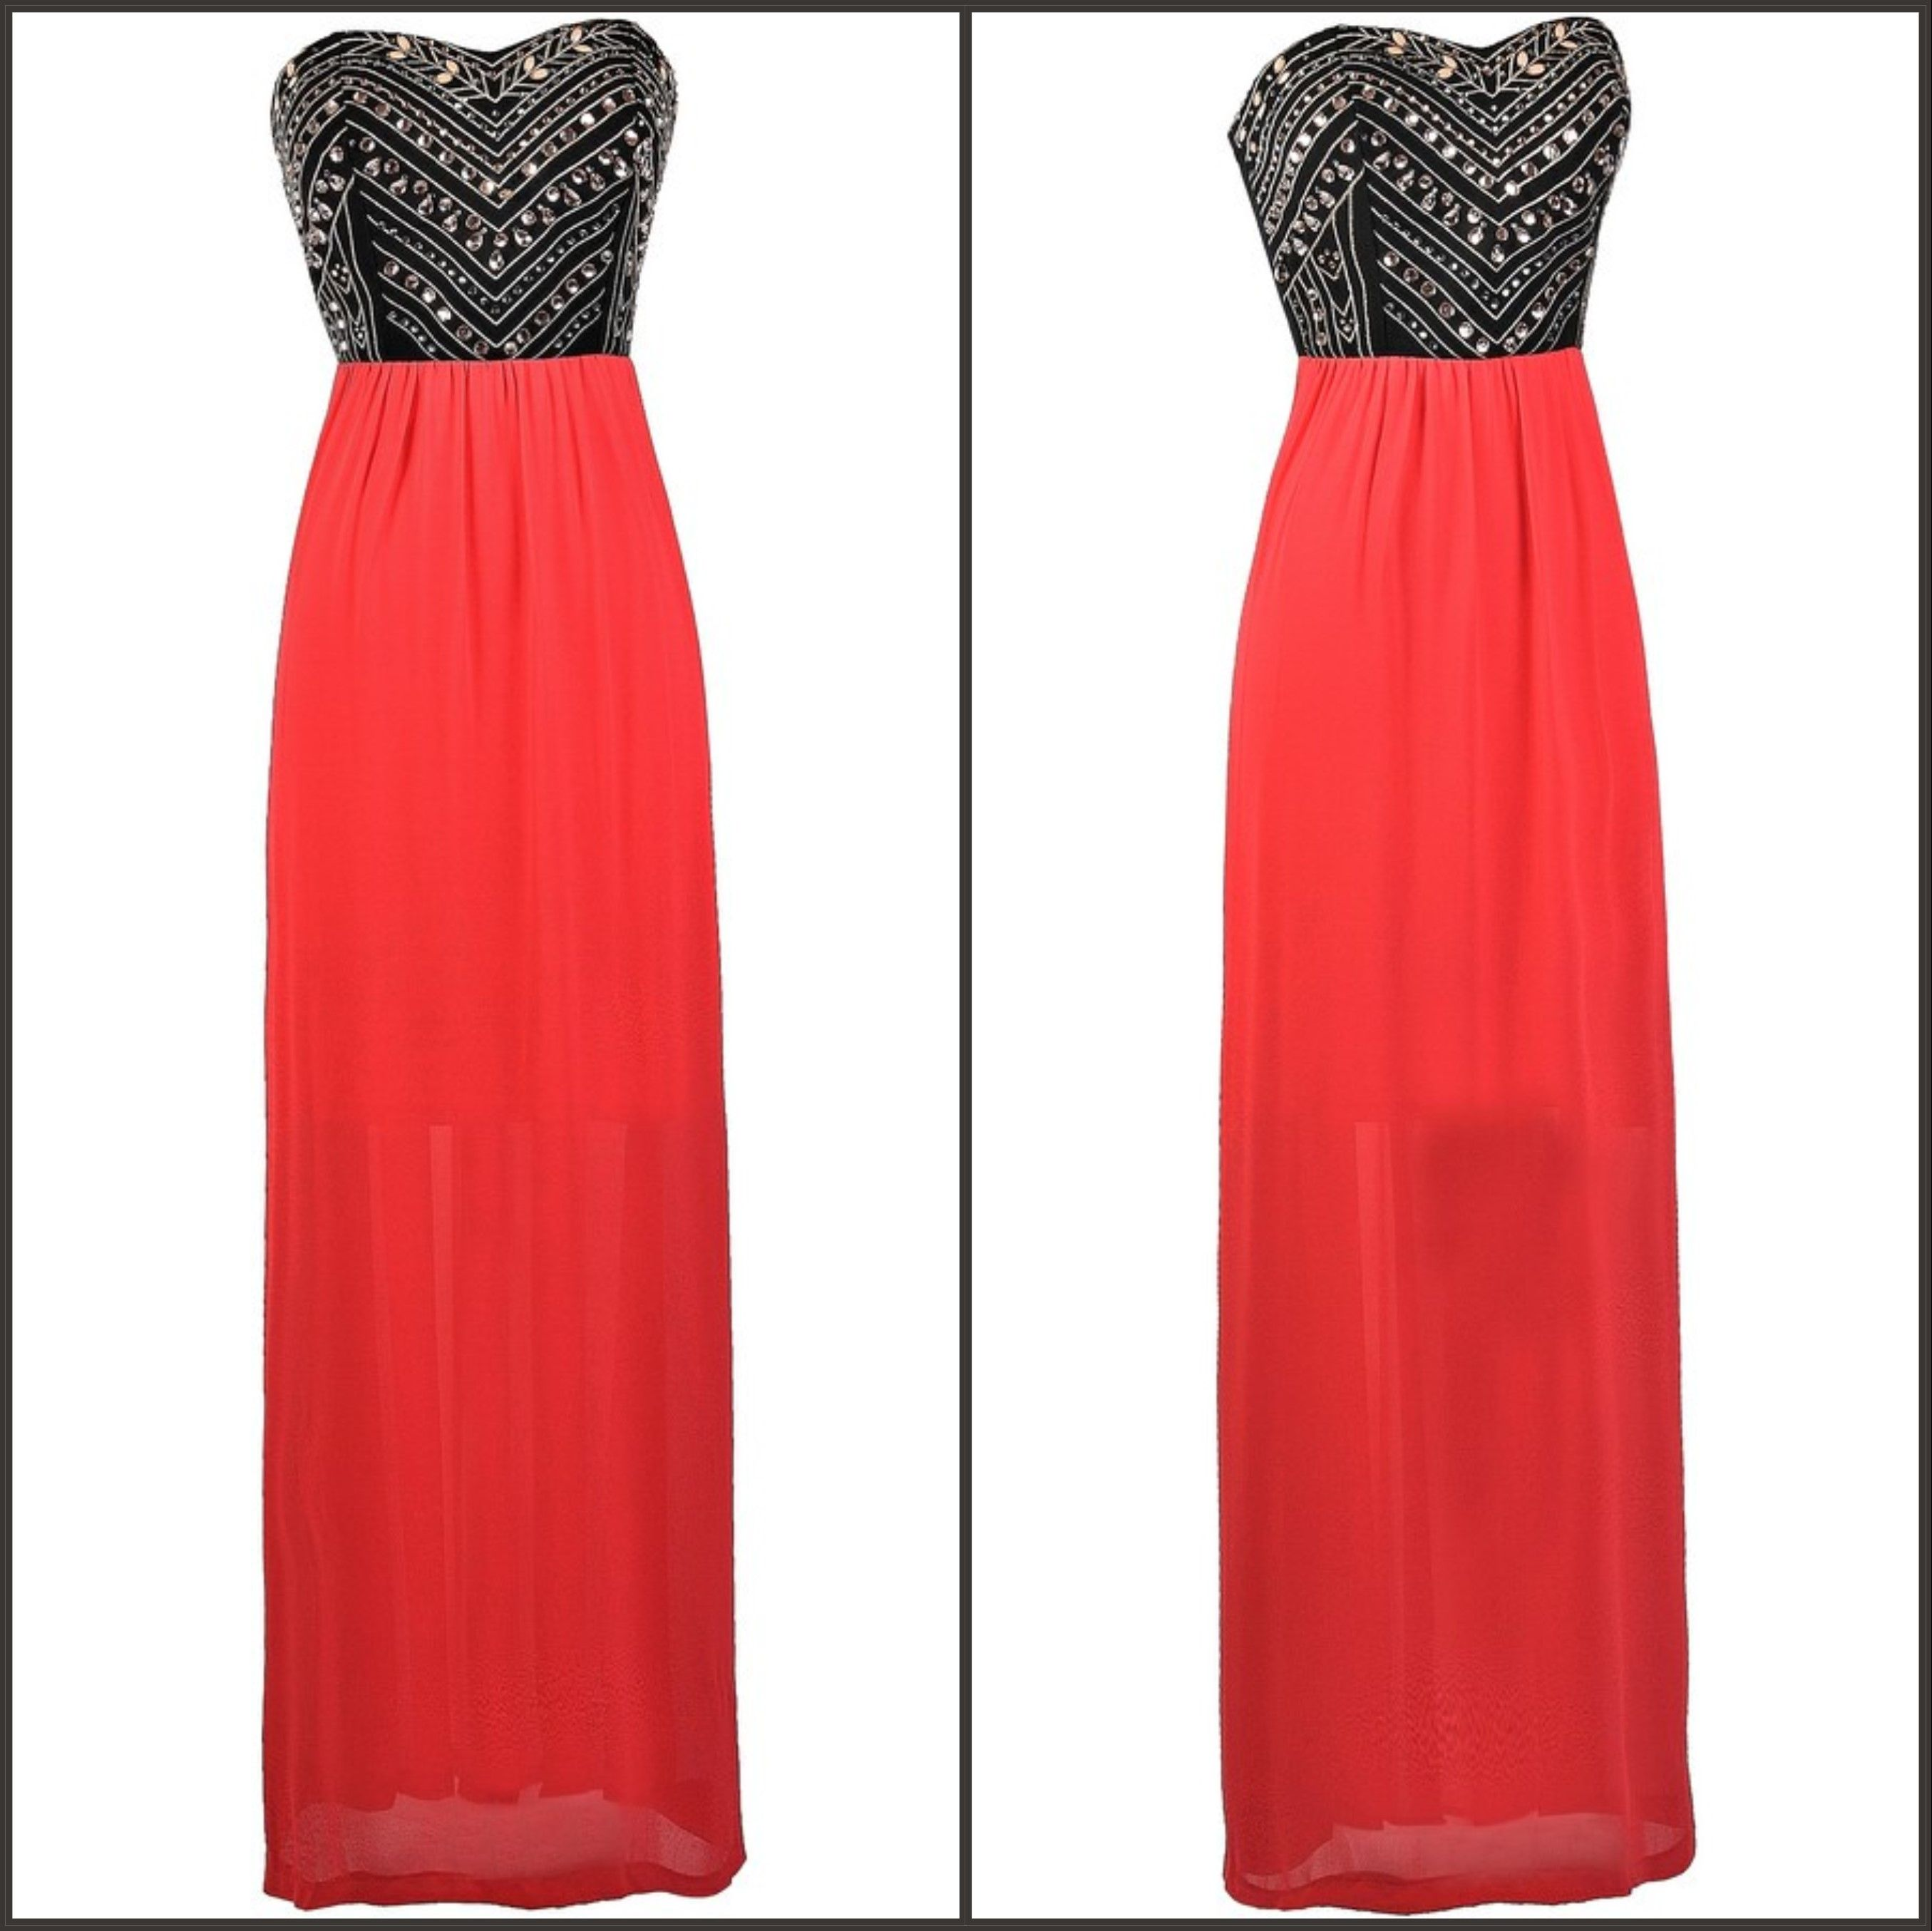 This coral red maxi dress has bold embellishments at the bust